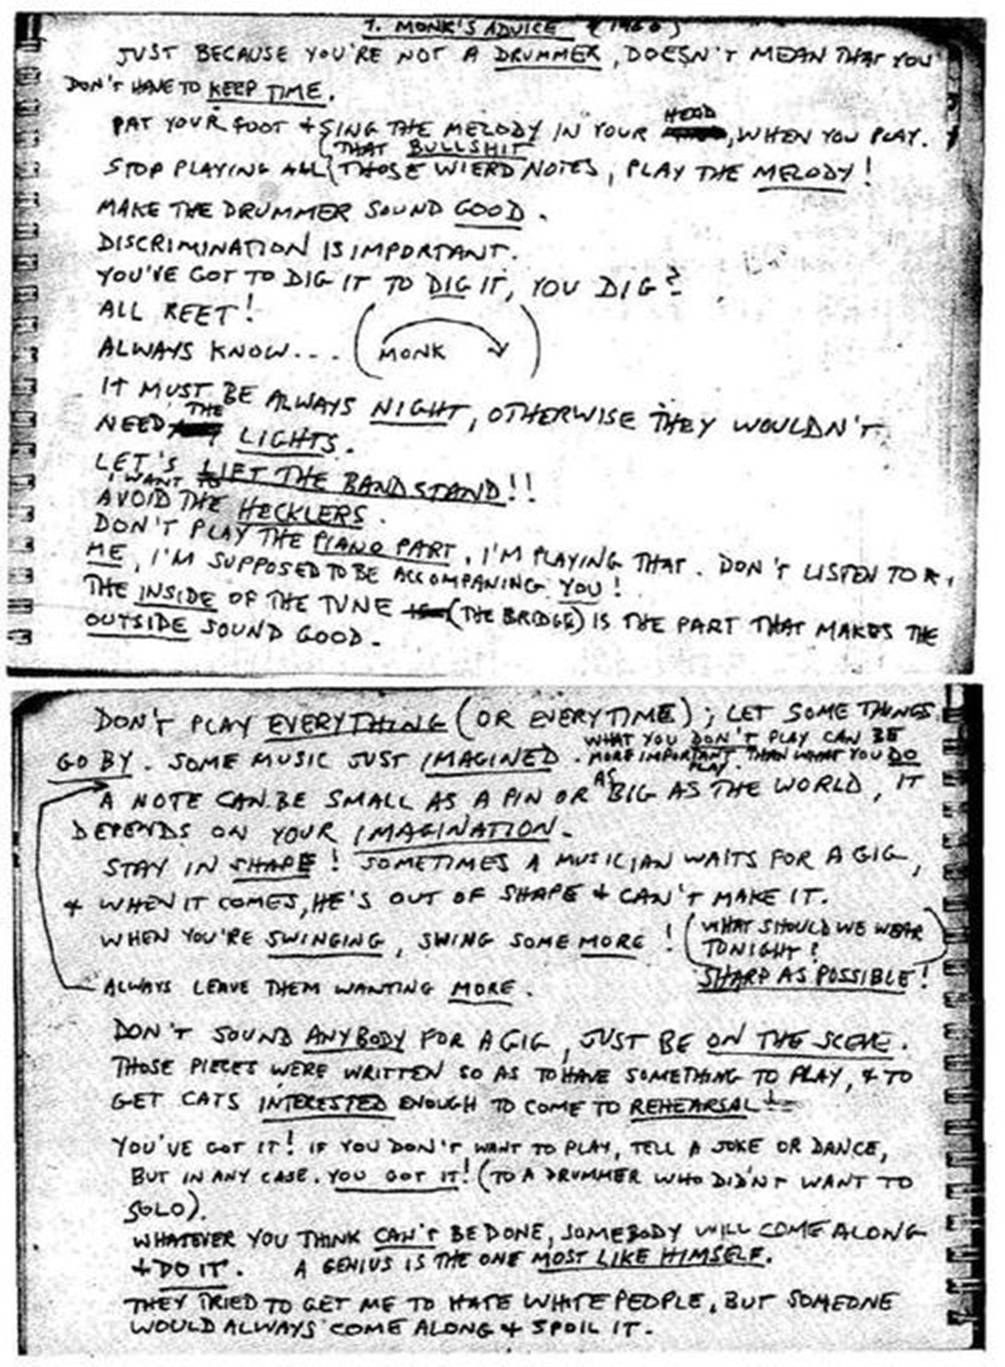 Thelonious Monk's 25 Tips for Musicians (1960